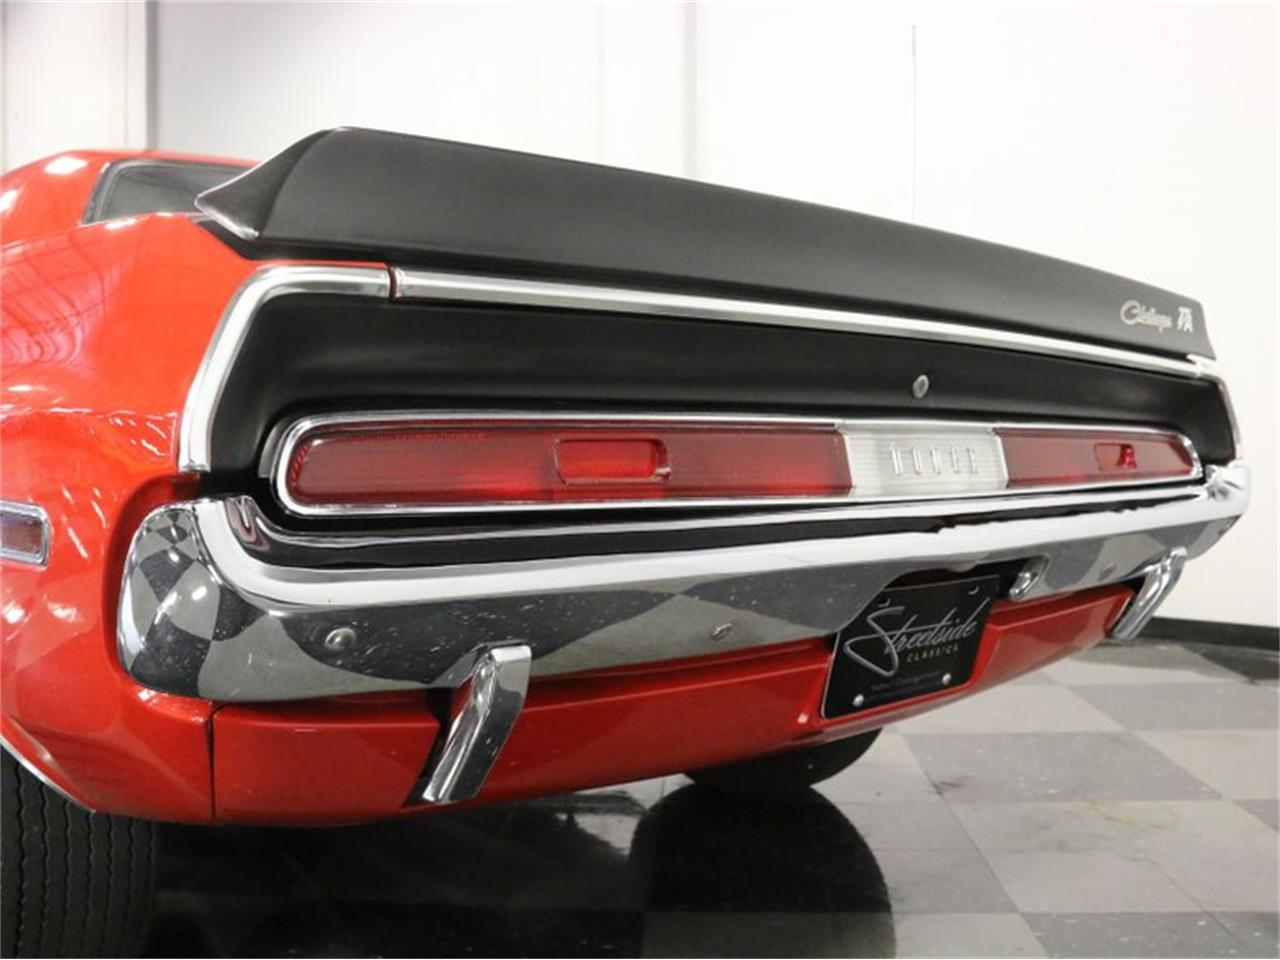 Large Picture of 1970 Challenger T/A located in Texas - $69,995.00 - N7CT